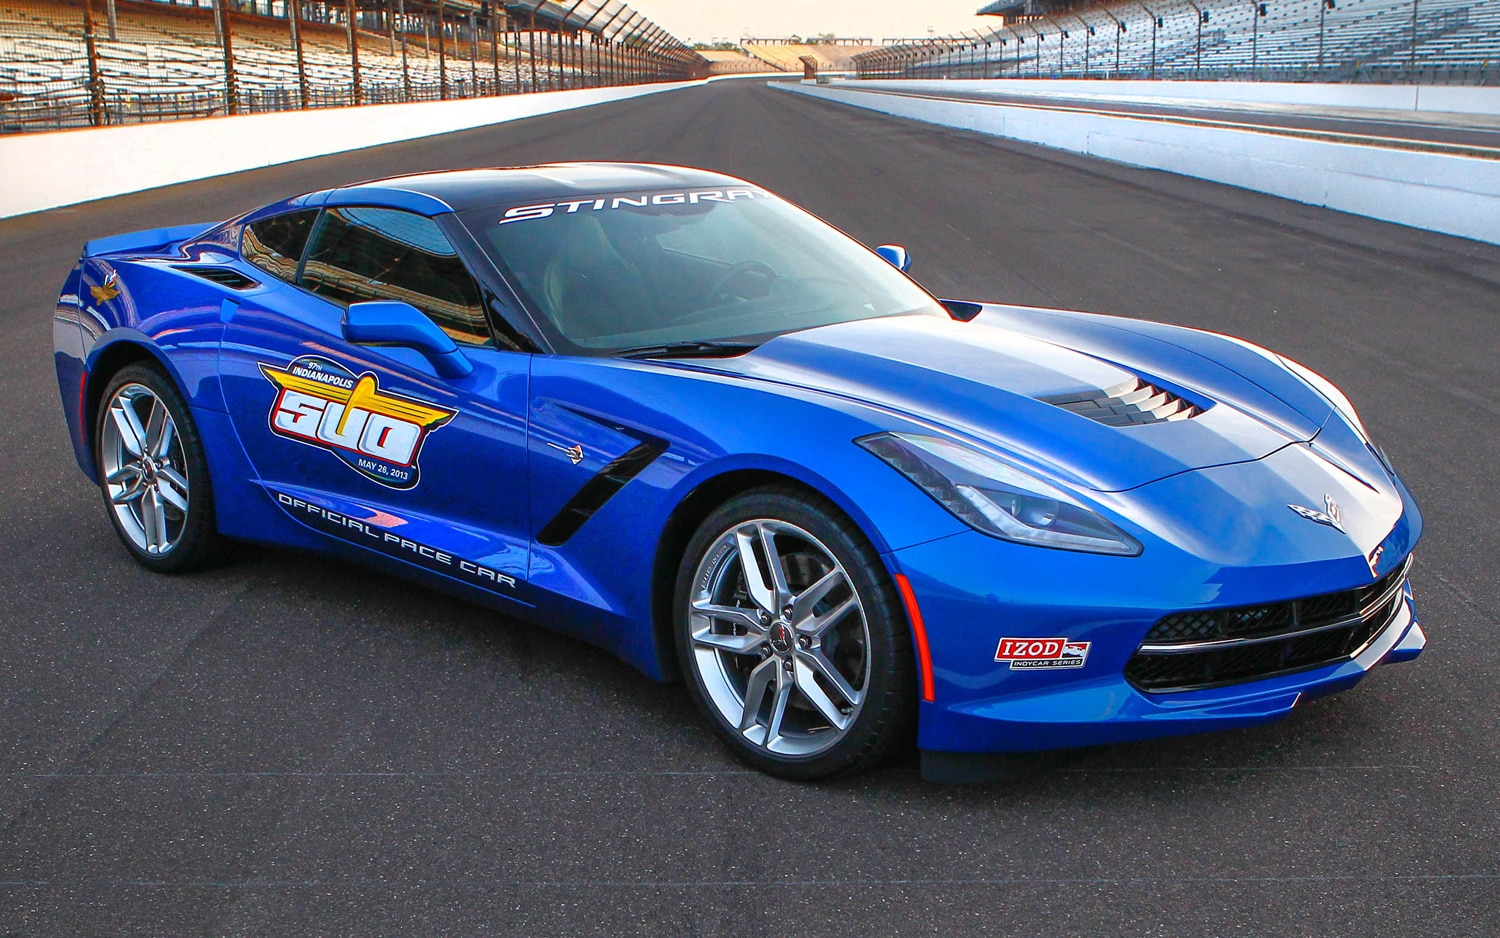 2014 Chevrolet Corvette Indy 500 Pace Car Front Three Quarters View On Track1